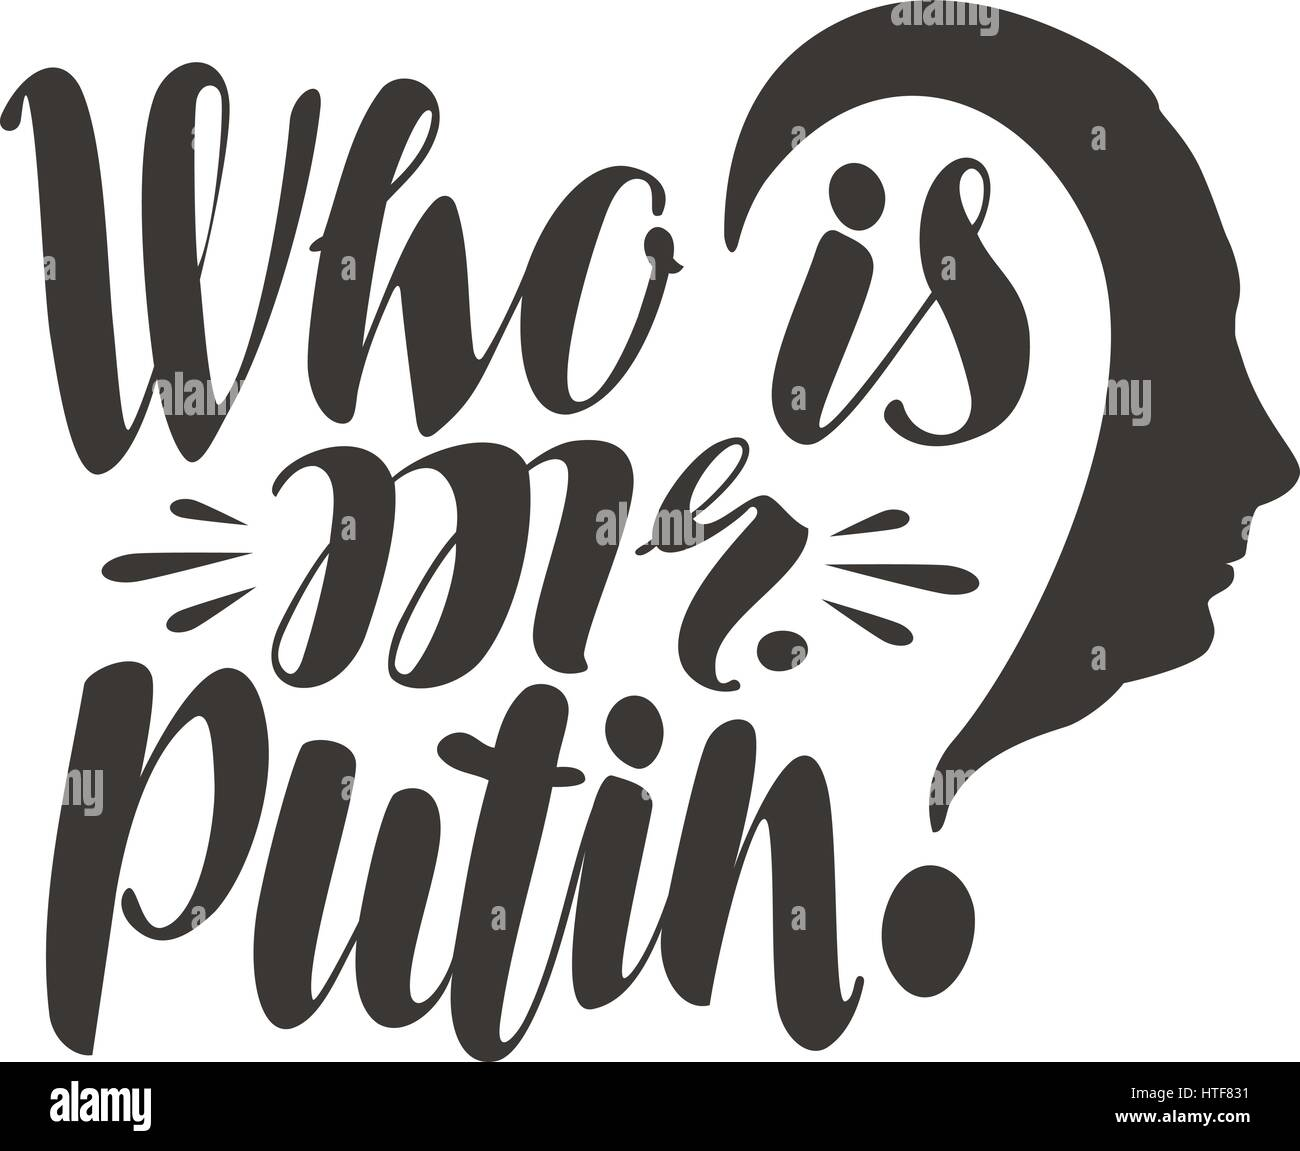 Famous saying, Who is mr. Putin. Russia, politics concept. Lettering, calligraphy vector illustration - Stock Image